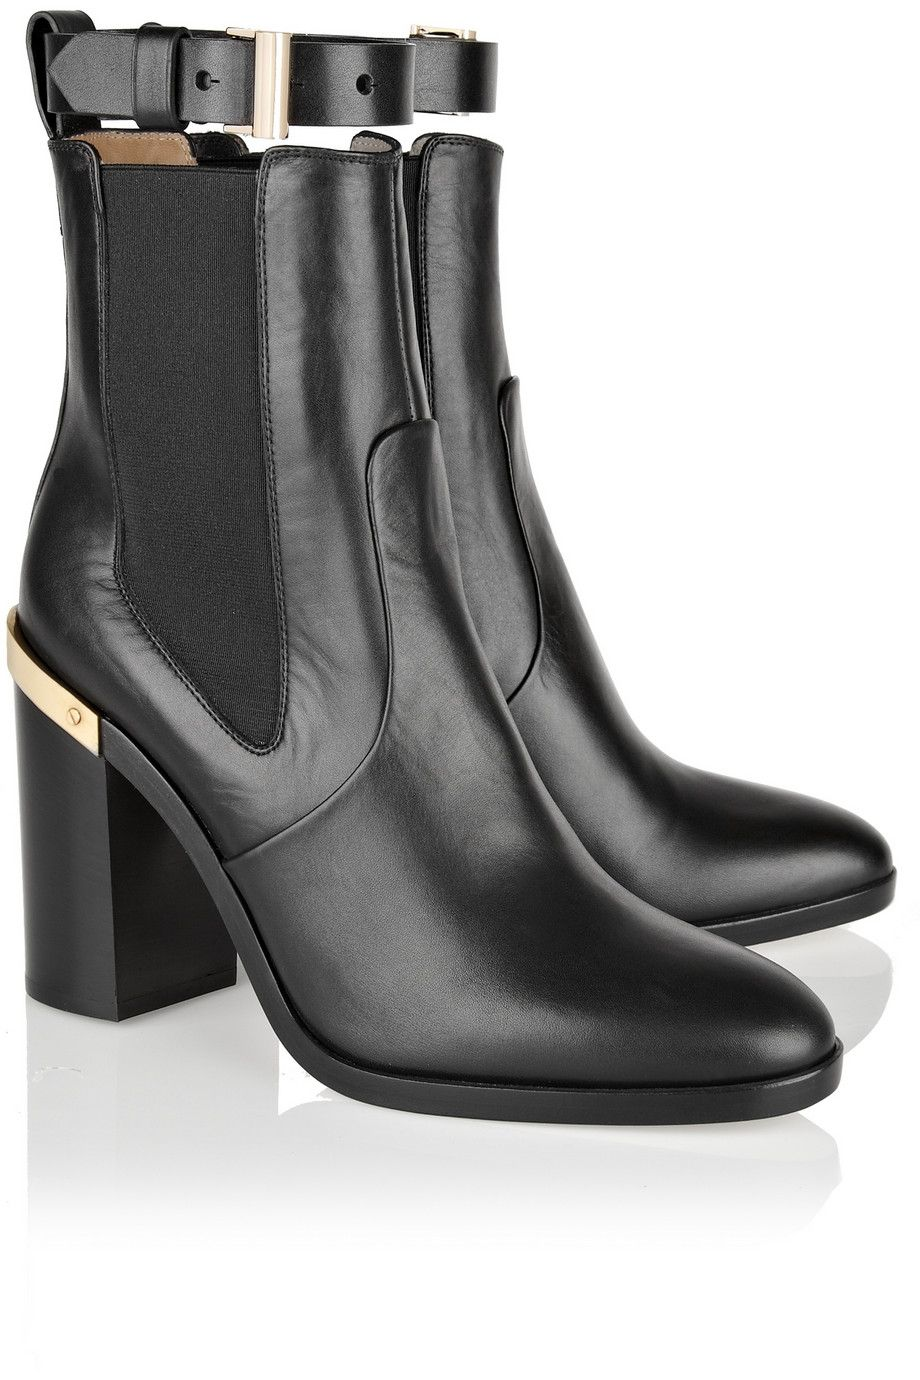 REED KRAKOFF Leather Ankle Boots RauF6SND